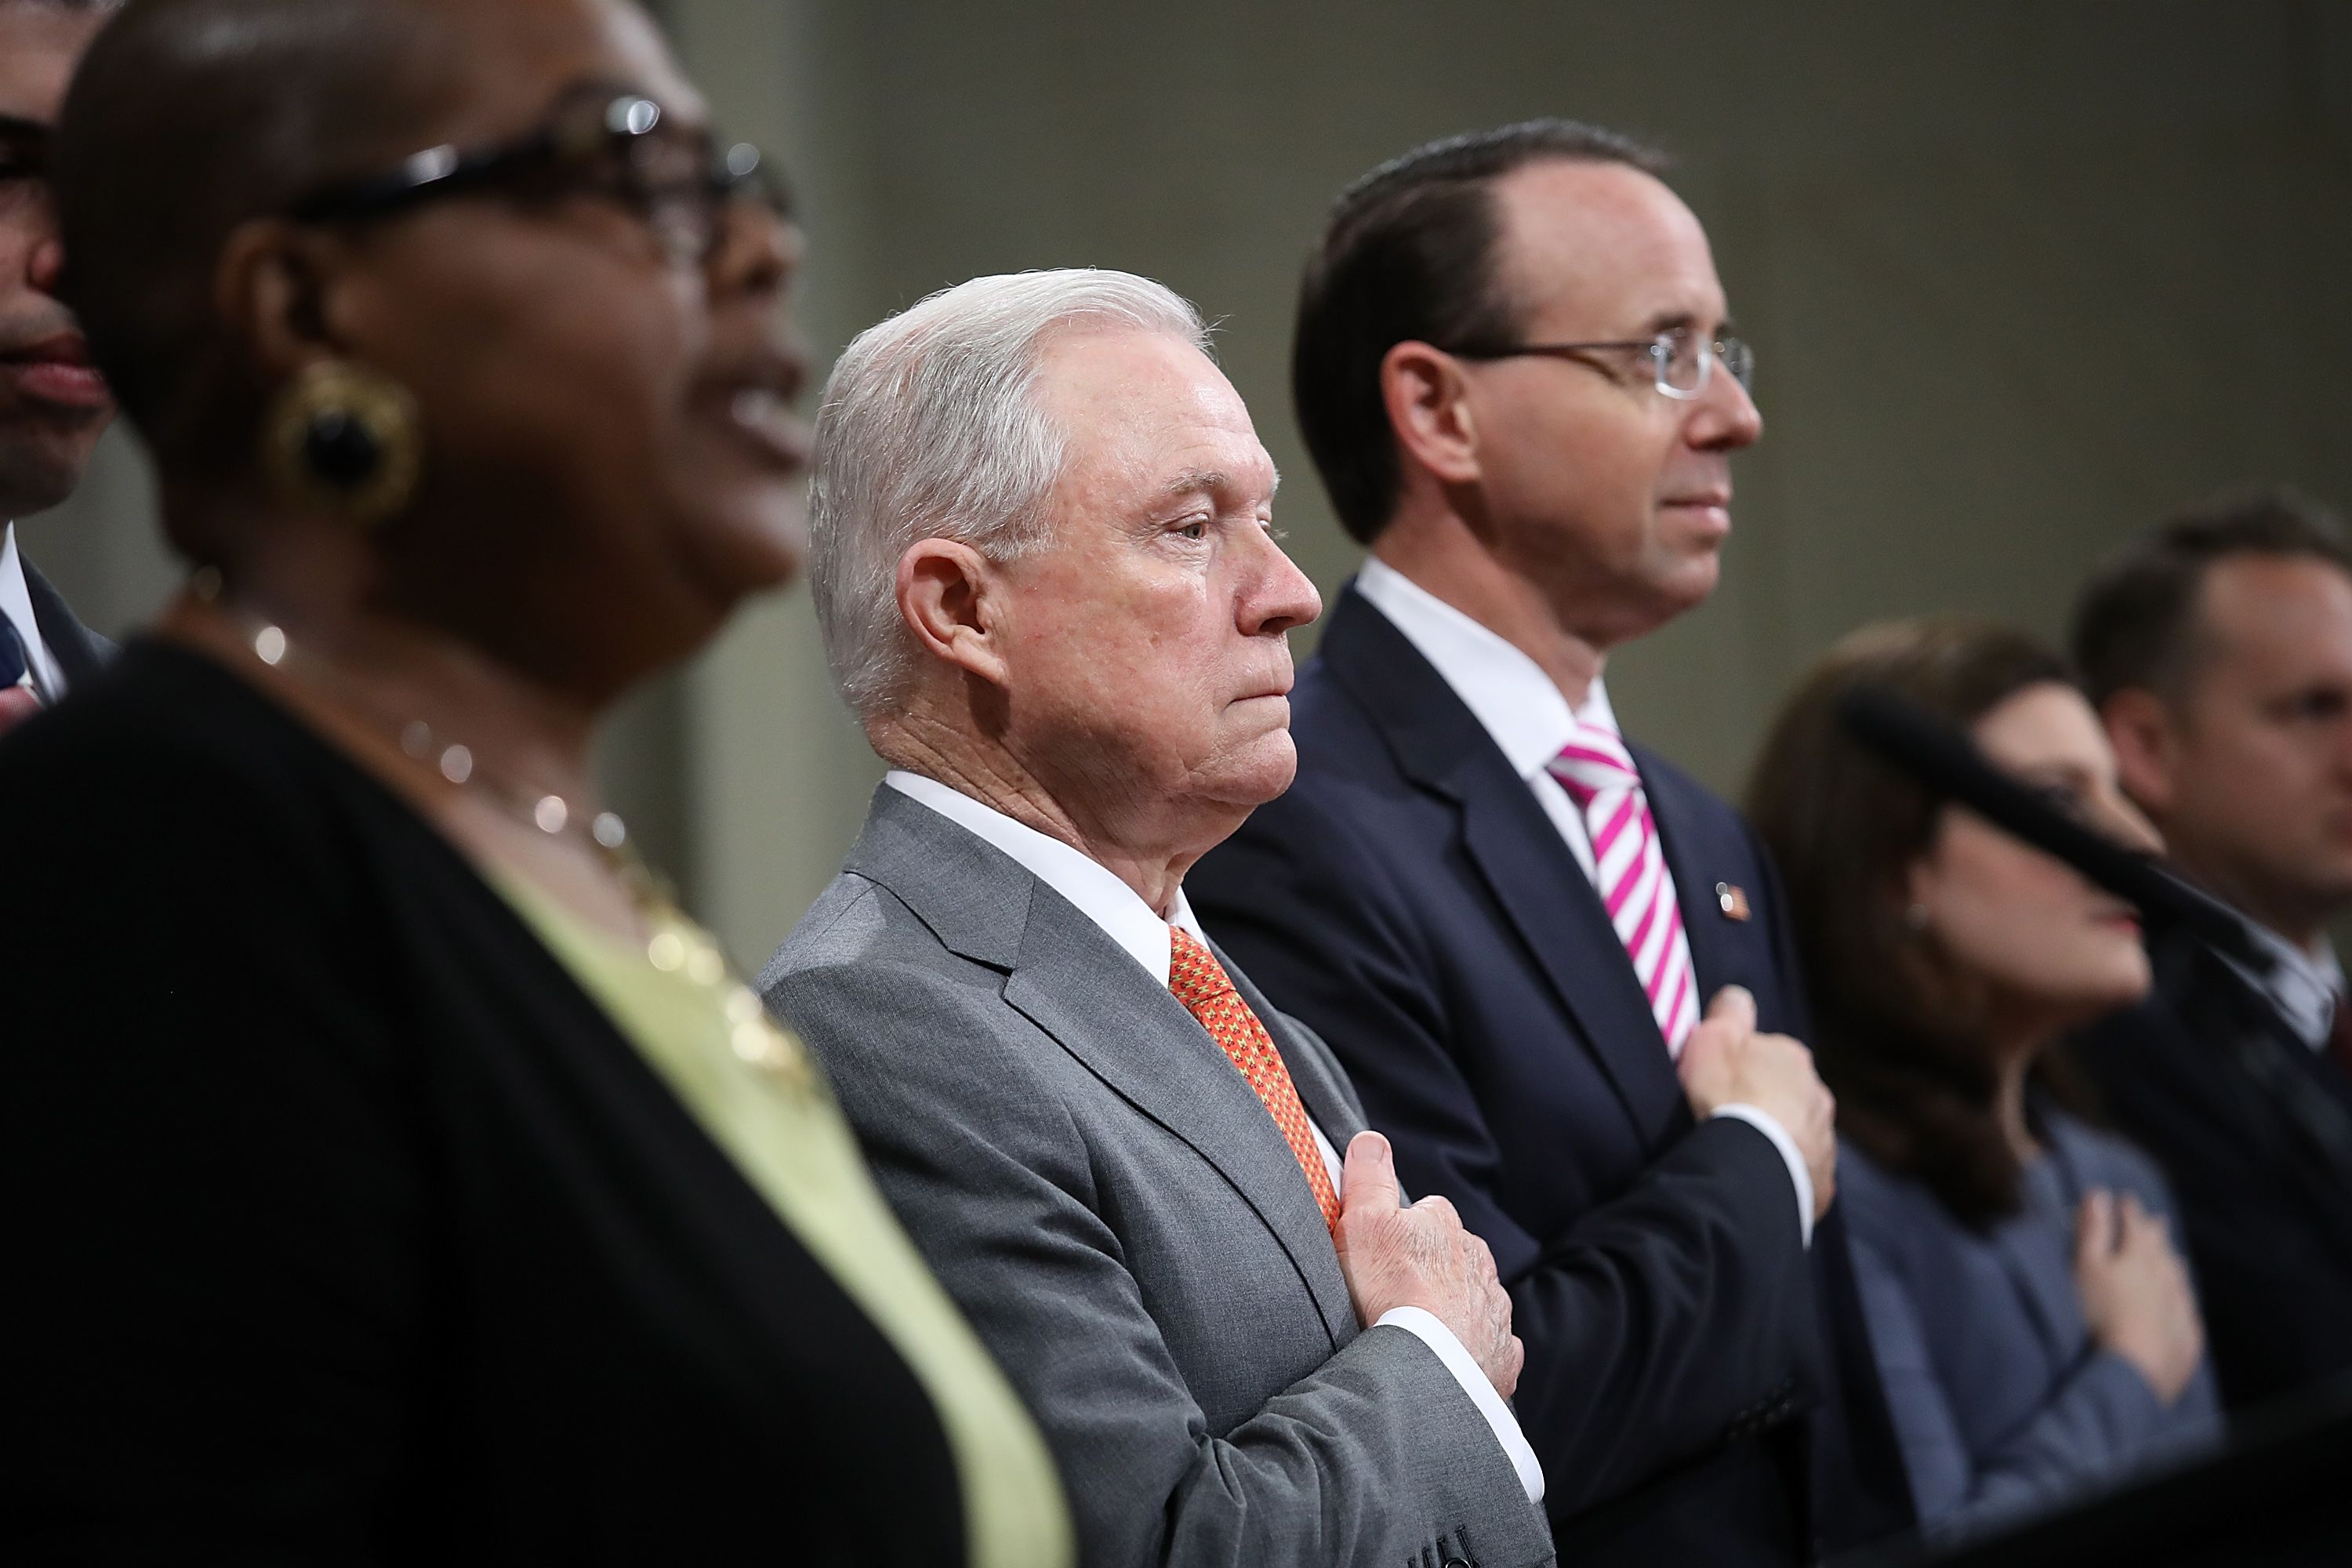 United States culture 'less hospitable to people of faith,' AG Sessions says